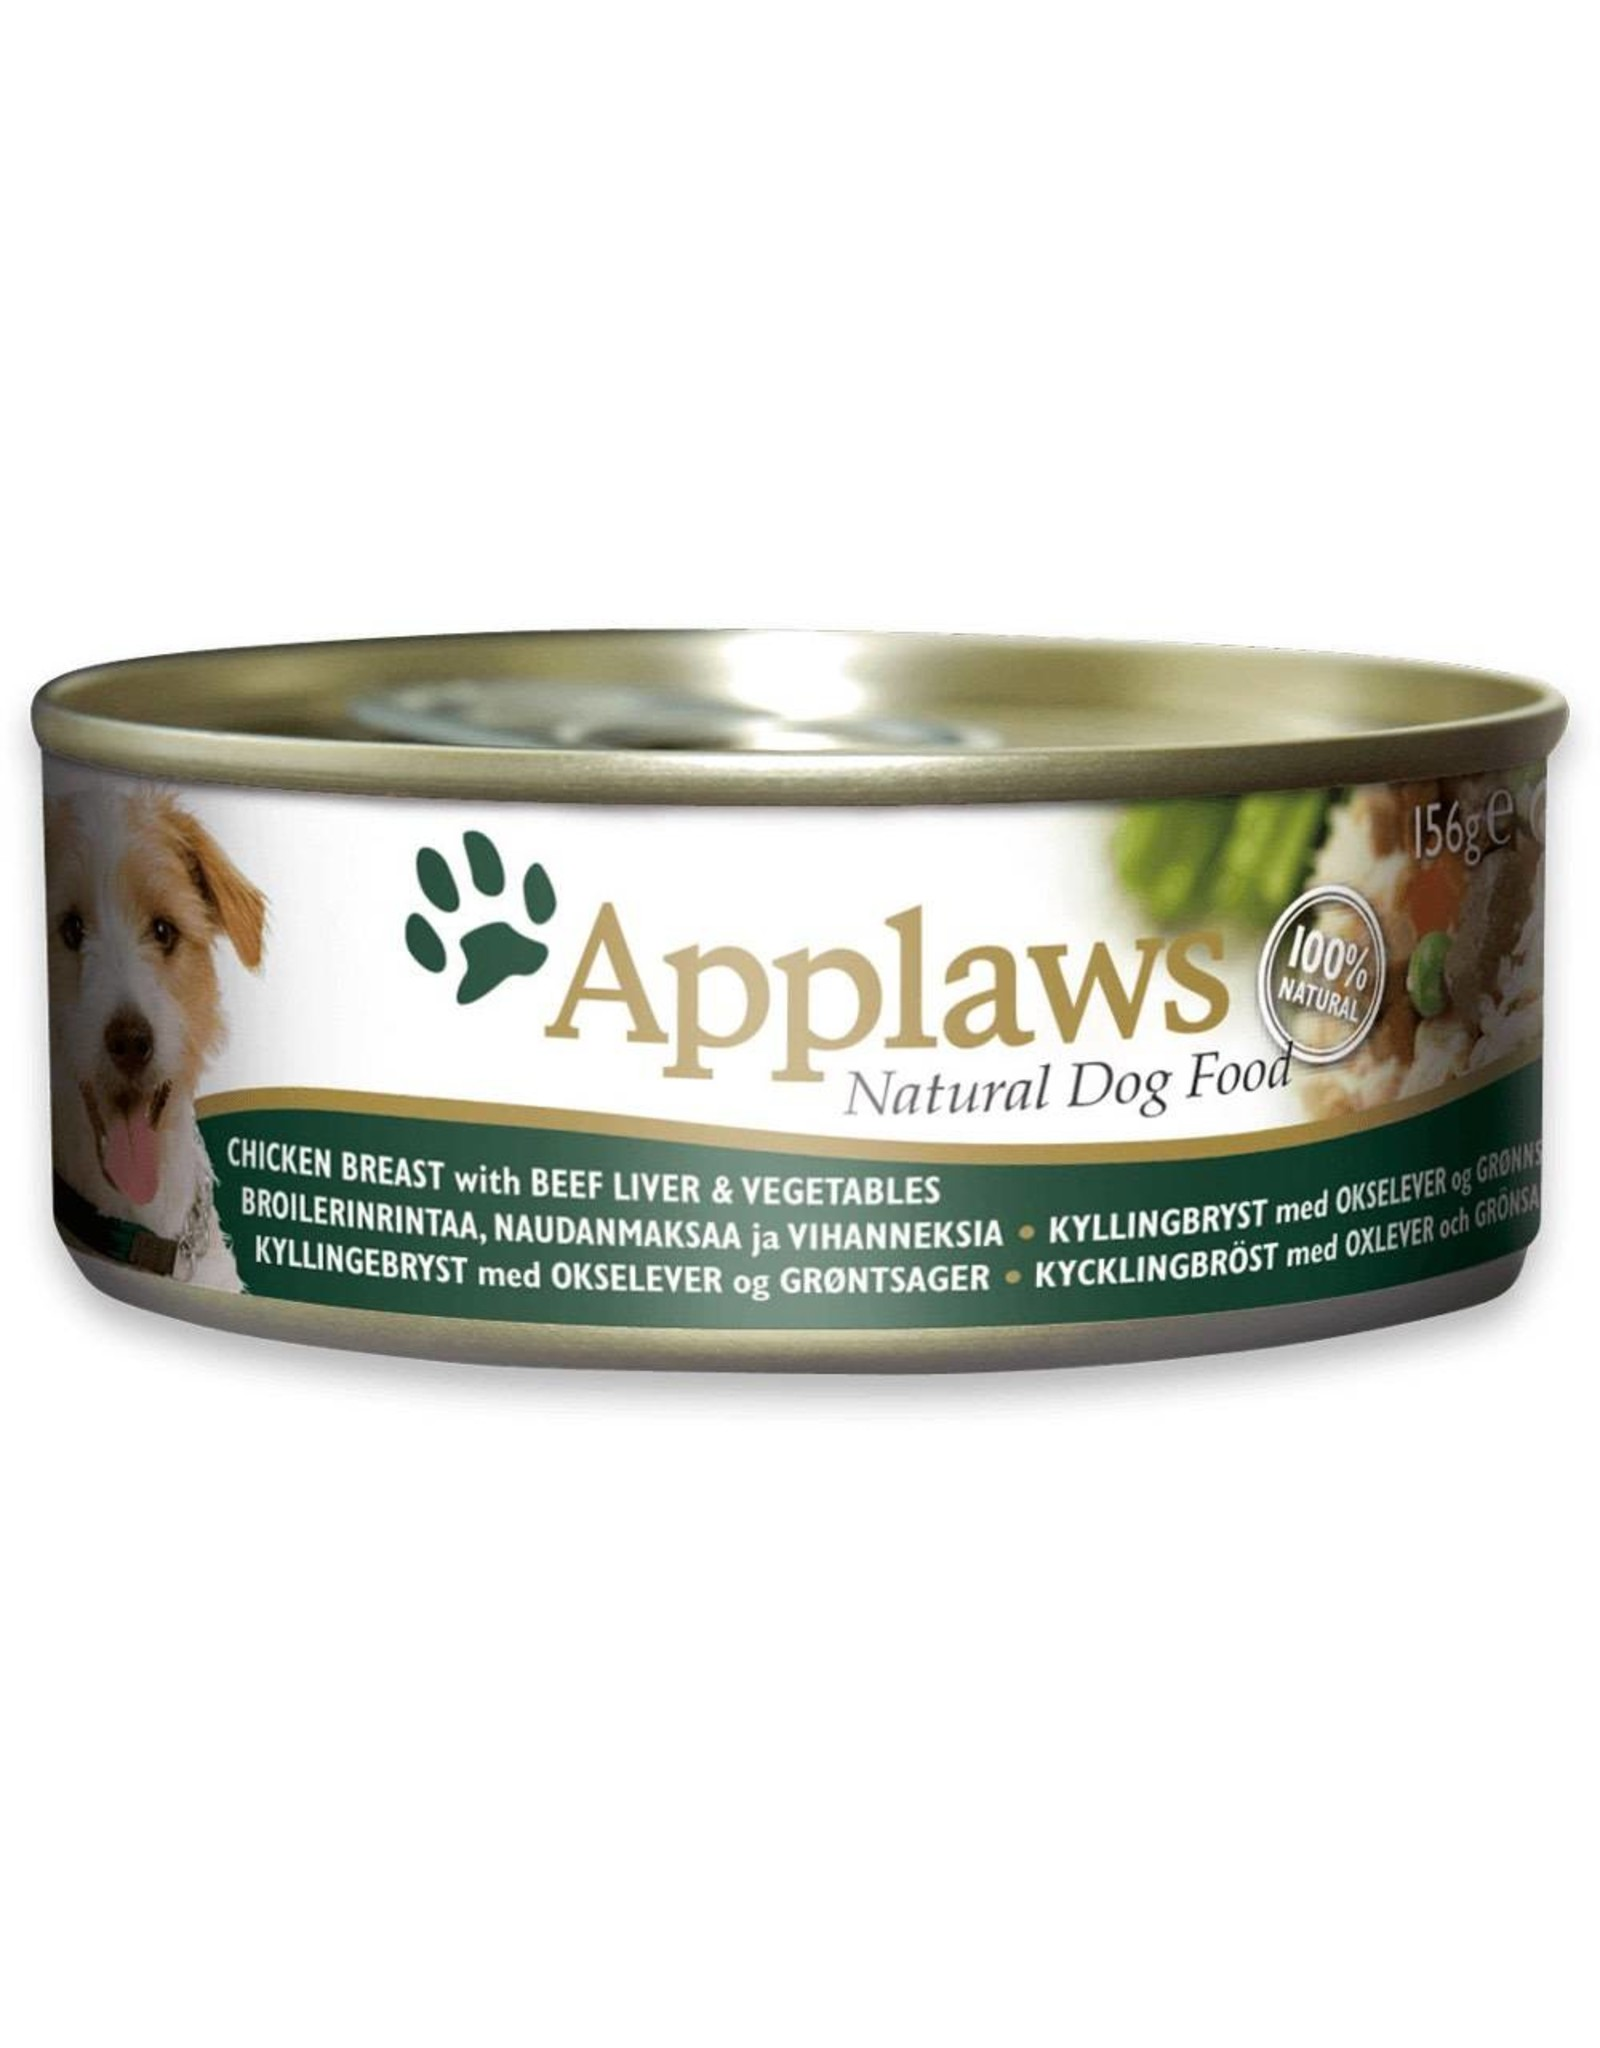 Applaws Dog Wet Food Chicken Breast with Beef Liver & Vegetables 156g